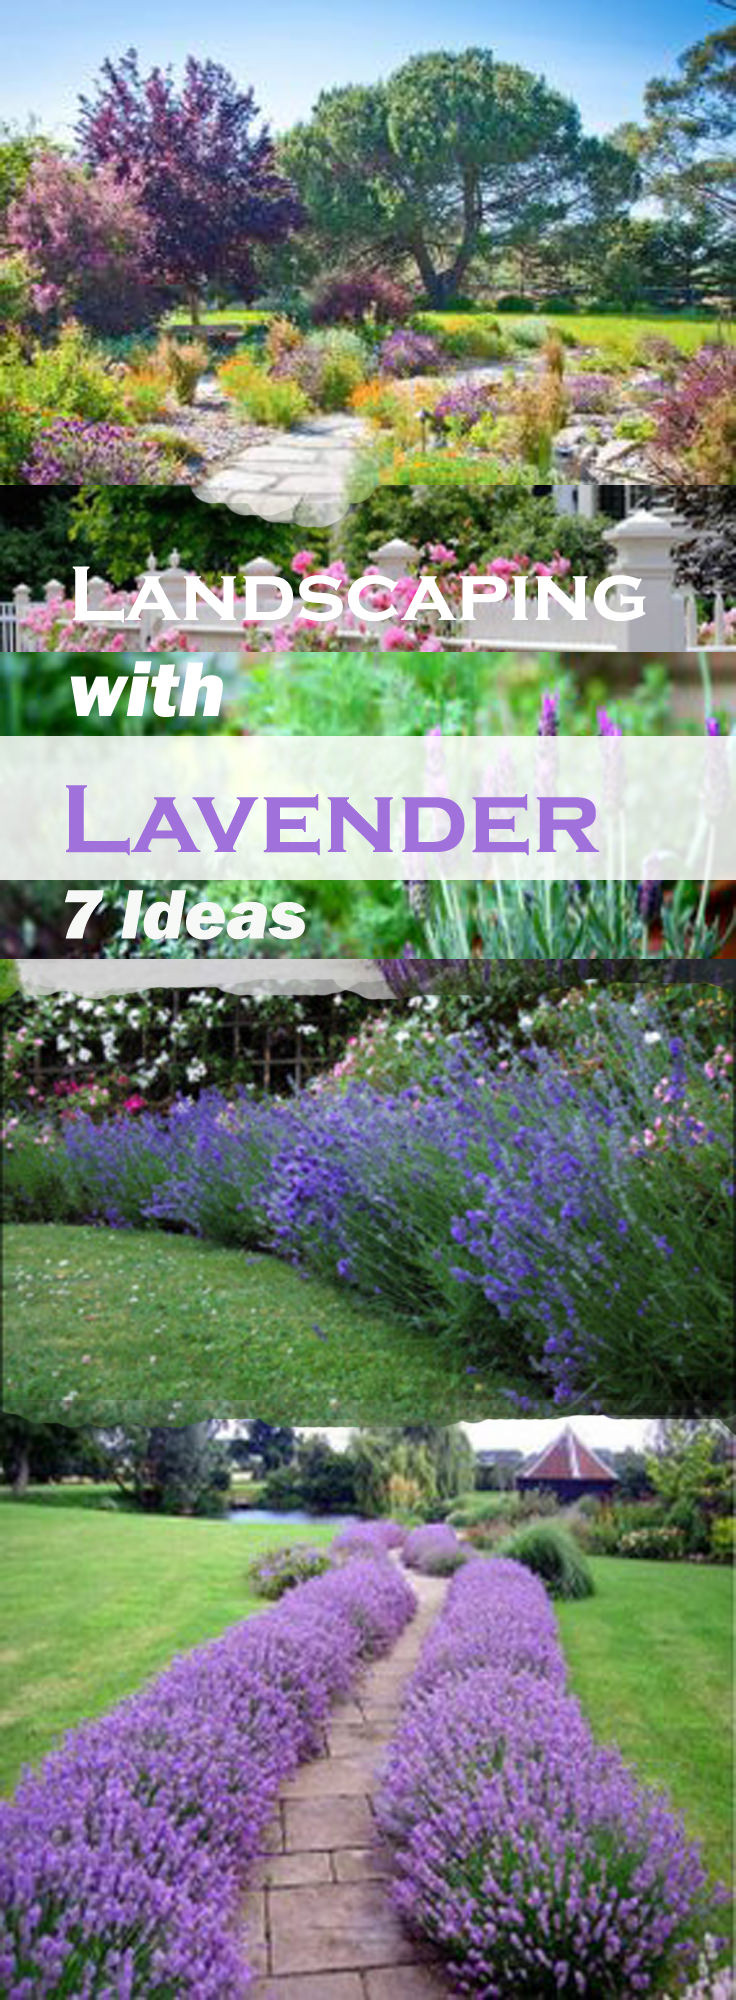 Best ideas about Garden Landscape Ideas . Save or Pin Landscaping with Lavender Now.